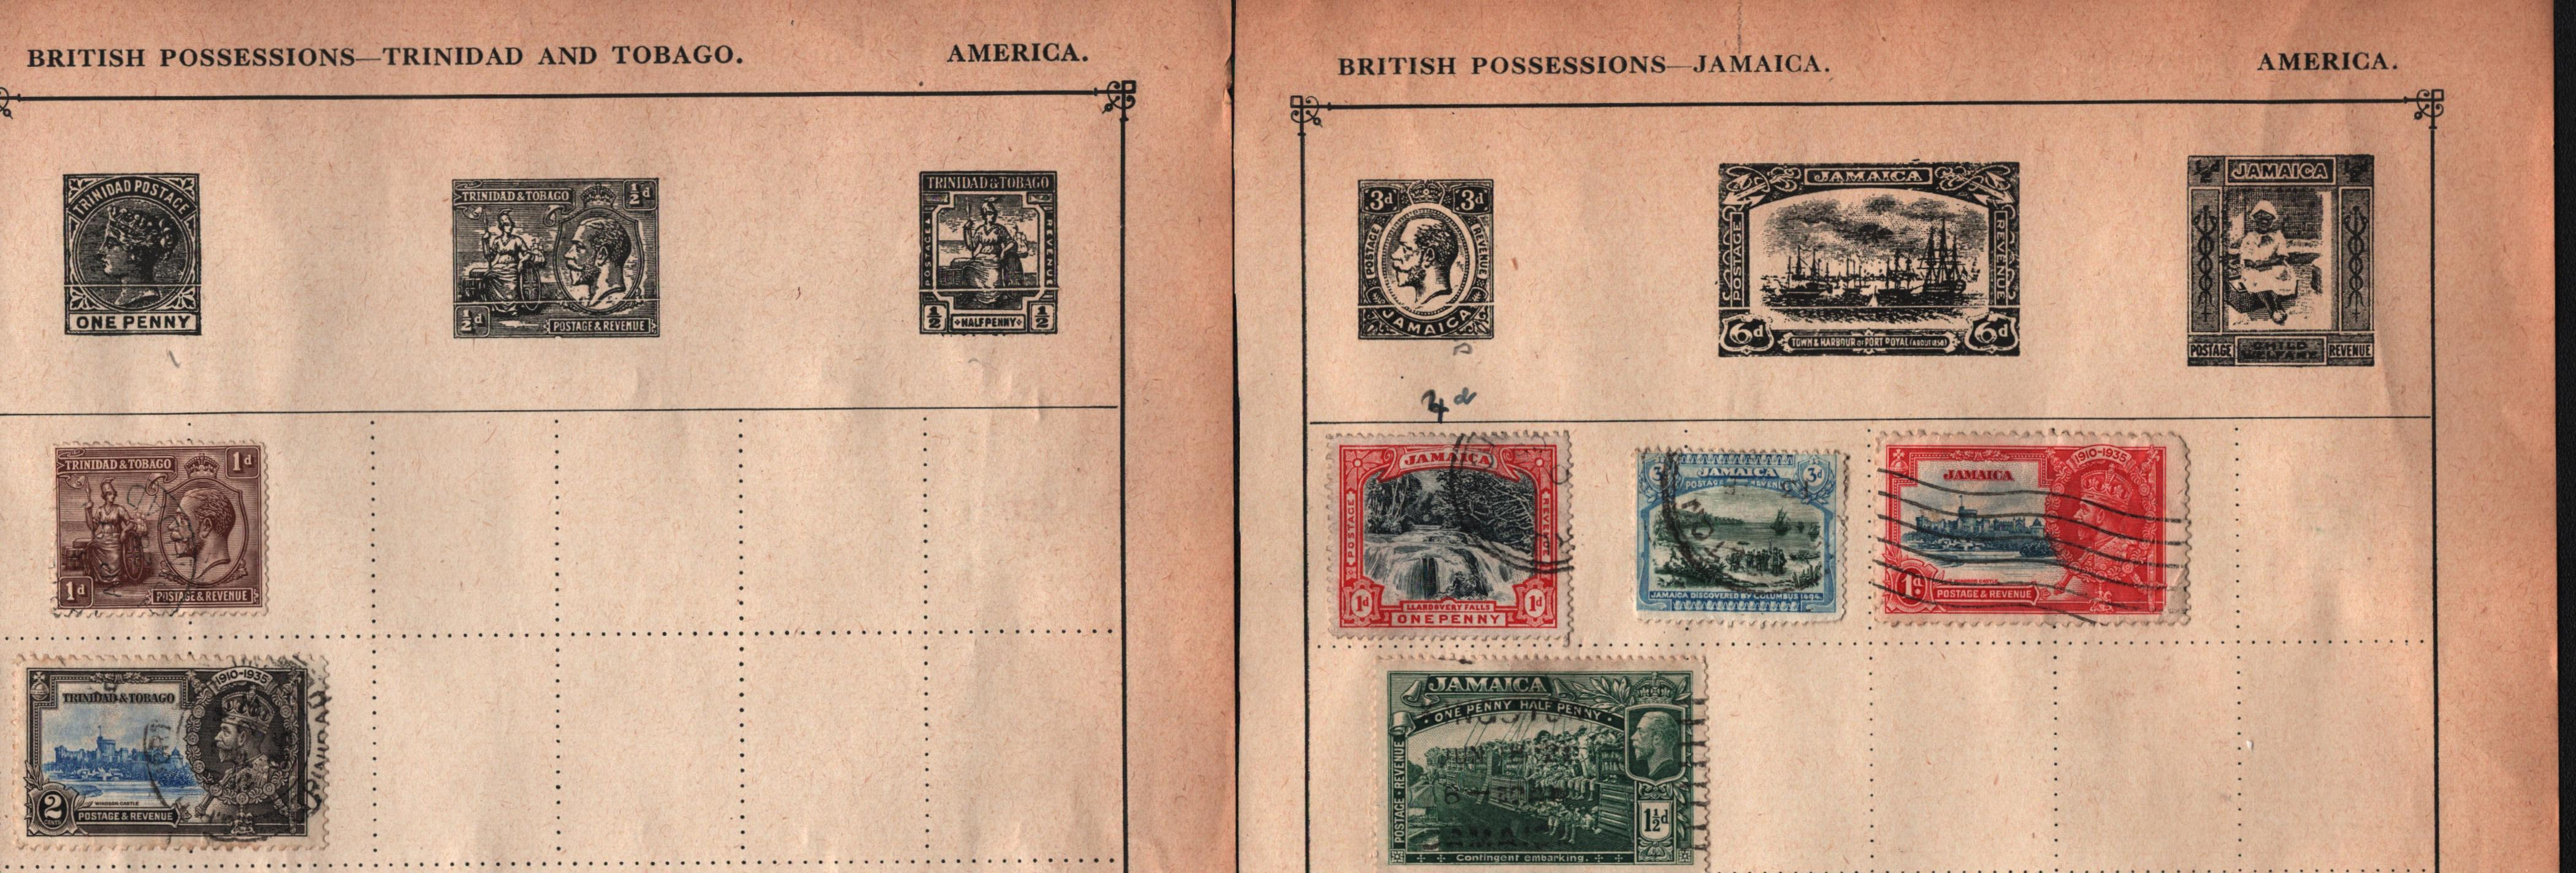 BCW stamp collection on 17 loose pages. Includes Jamaica, Ireland and more. Good condition. We - Image 2 of 2